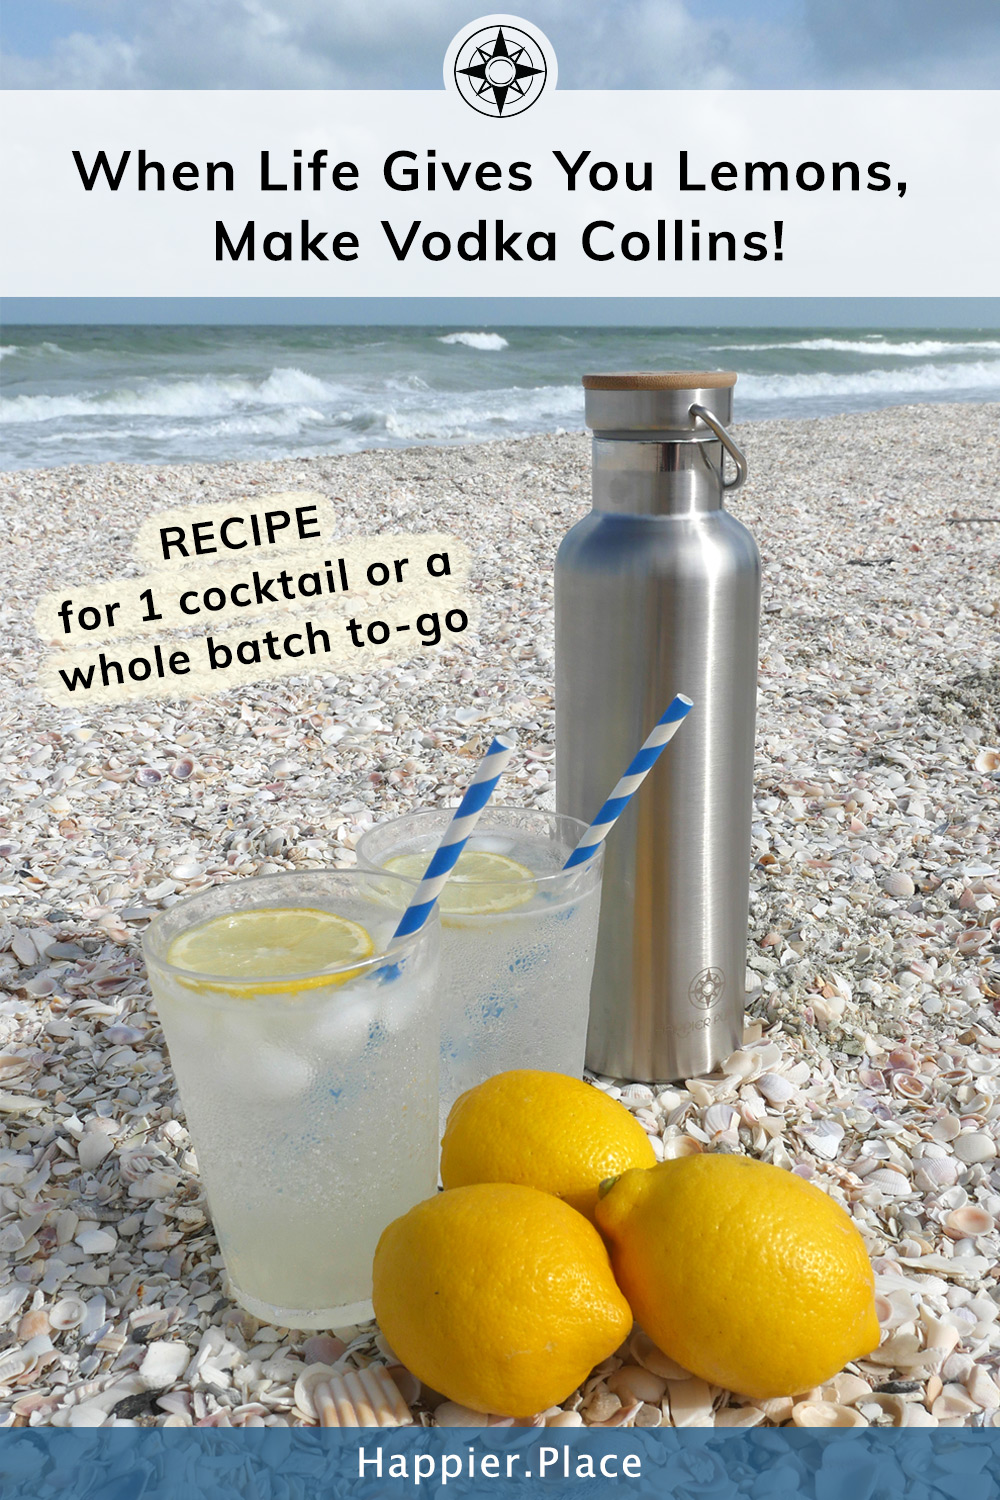 When Life Gives You Lemons, Make Vodka Collins!